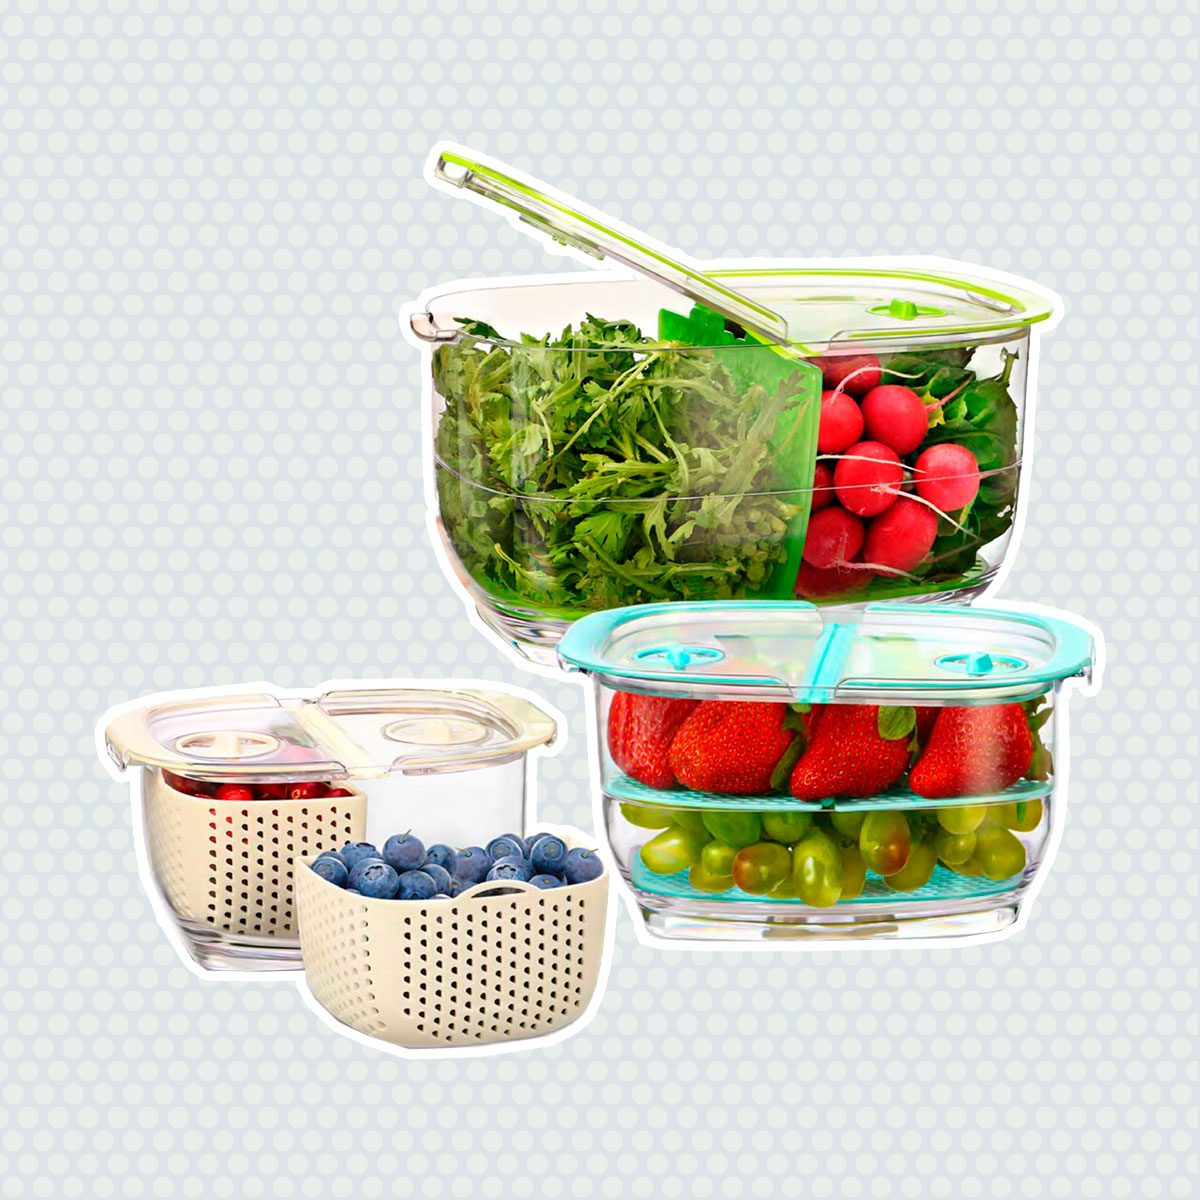 LUXEAR Fresh Produce Vegetable Fruit Storage Containers 3Piece Set, BPA-free Fridge Storage Container, Partitioned Salad Container, Fridge Organizers, Used...